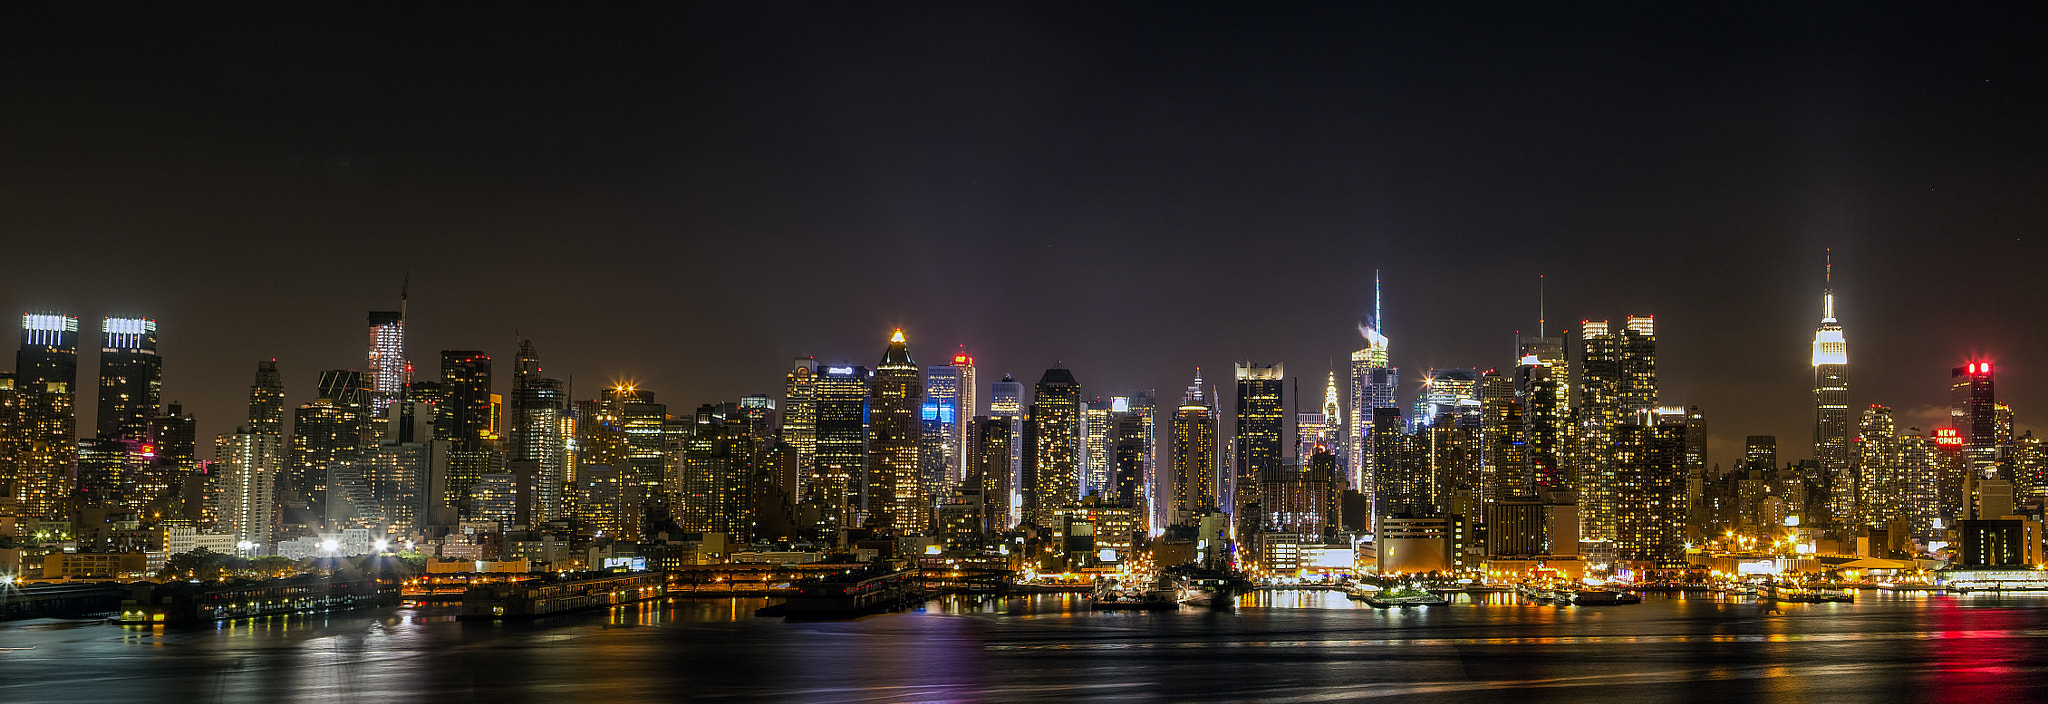 Photograph nightime NYC by Angel Escalante on 500px